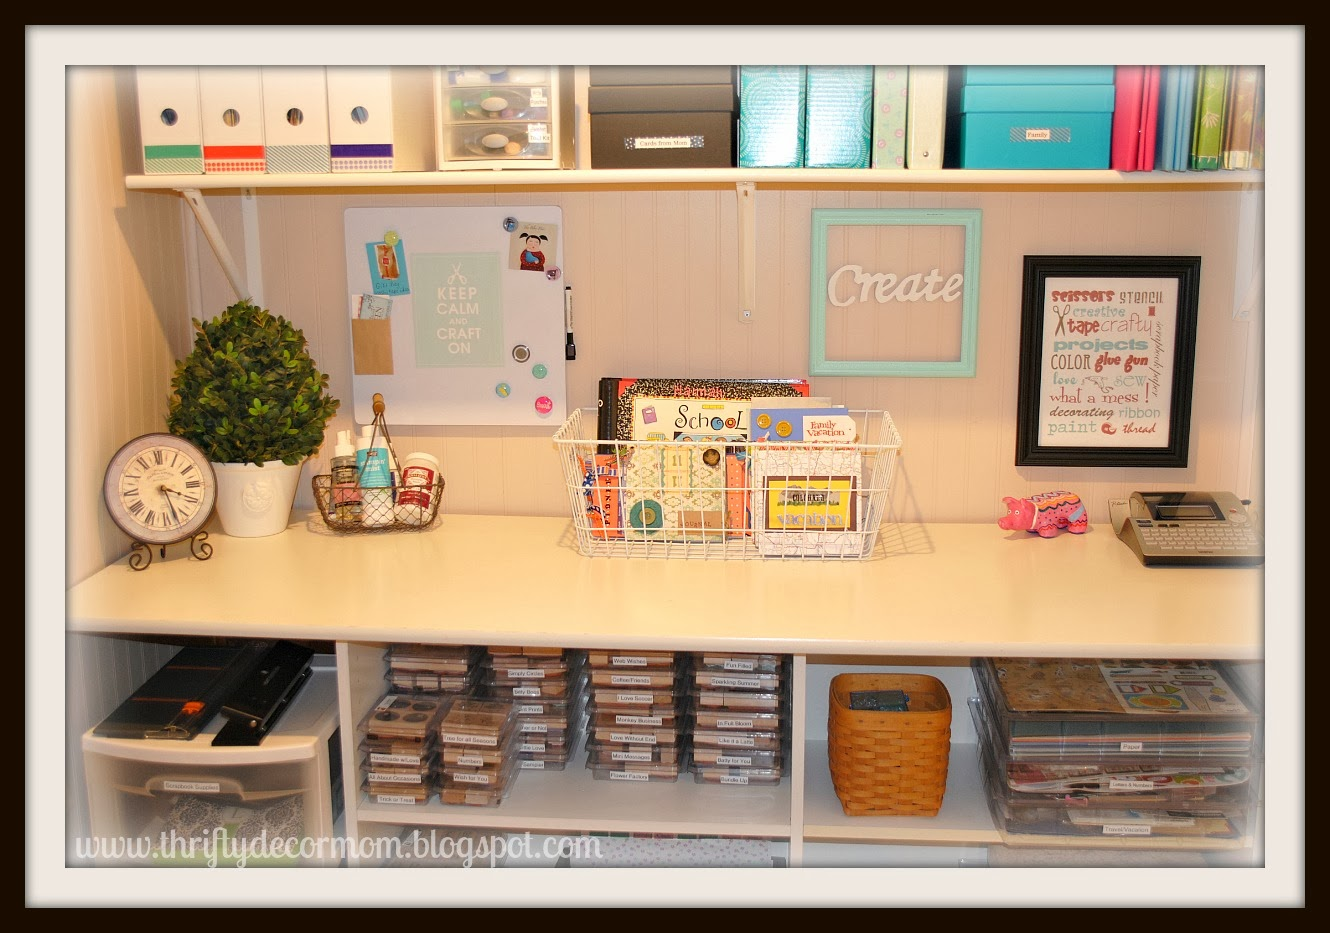 All Craft Rooms Archives - Page 6 of 19 - Craft Storage Ideas